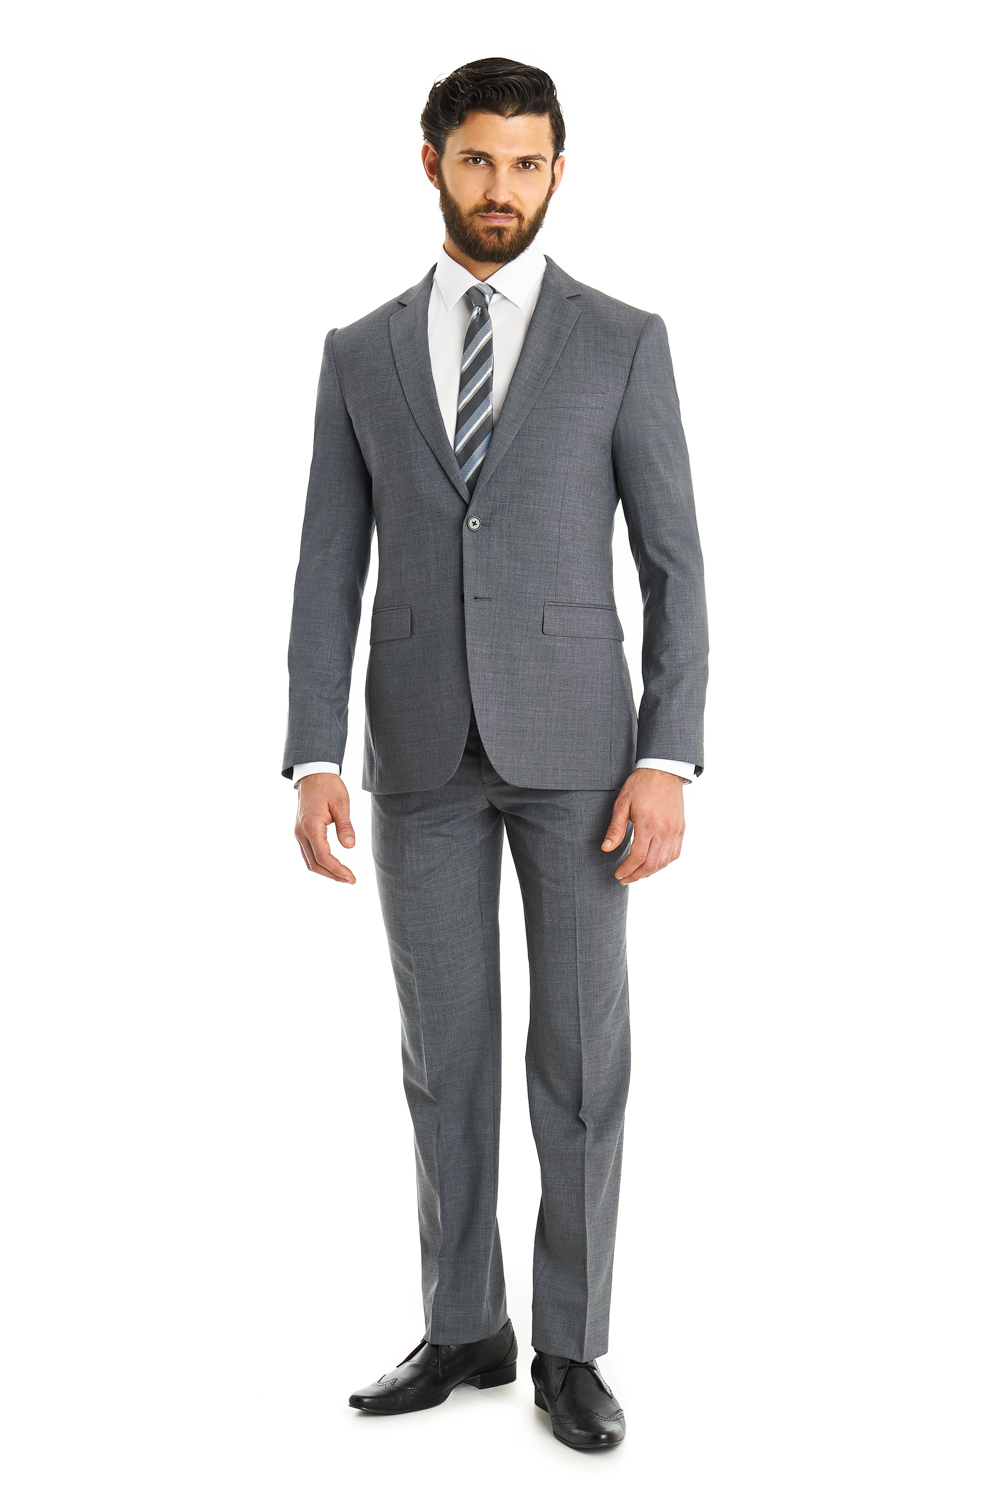 A crisp slim fit suit is essential for the daily grind, weddings, parties, and any other event you can imagine. Slim Fit. Jack NEW Braveman Men's 2-Piece Slim-Fit Suit with Tie - Light Grey - .